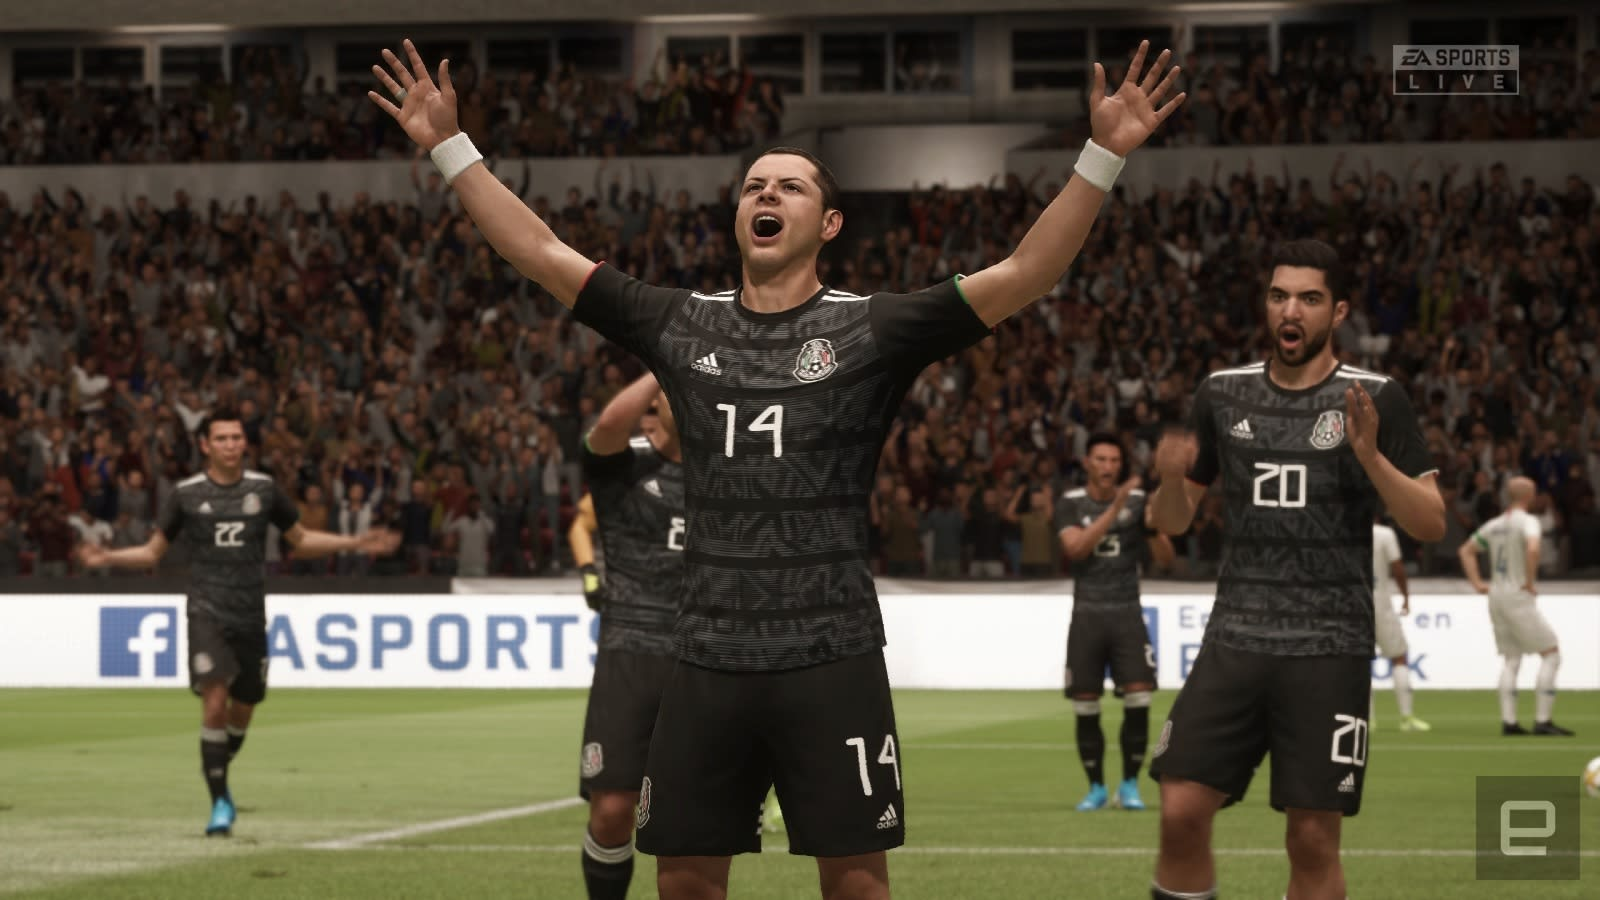 Fifa 2020 Schedule.Fifa Esports League Reveals Changes To 2020 Season Format